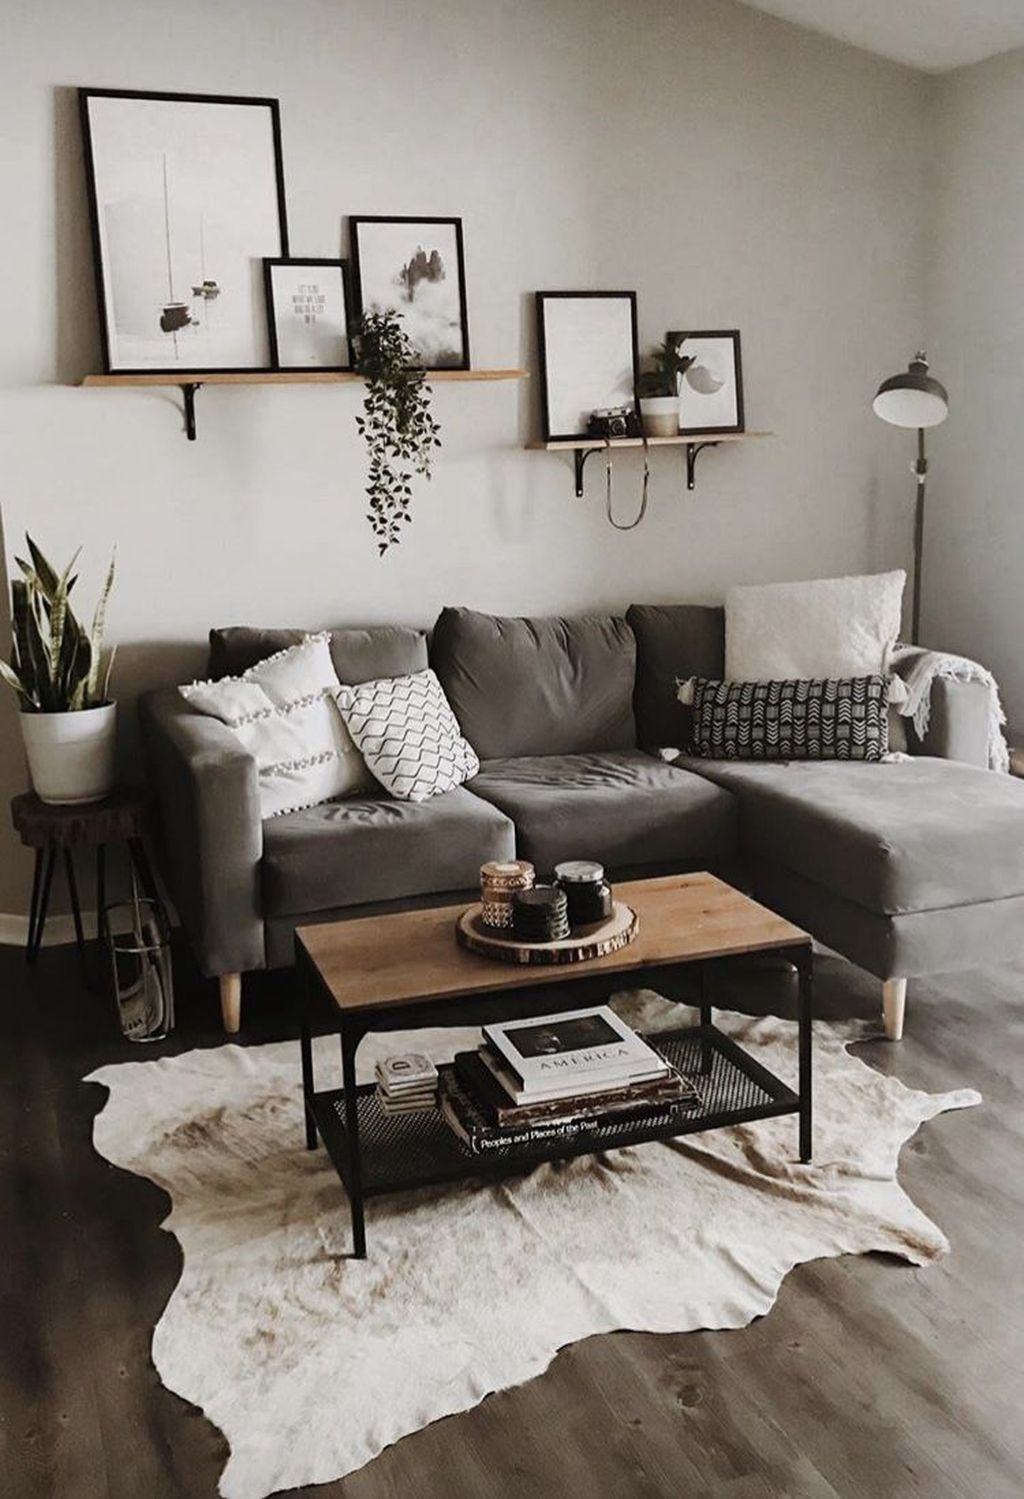 42 Simple Living Room Apartment Decorating Living Room Decor Modern Small Space Living Room Farmhouse Decor Living Room